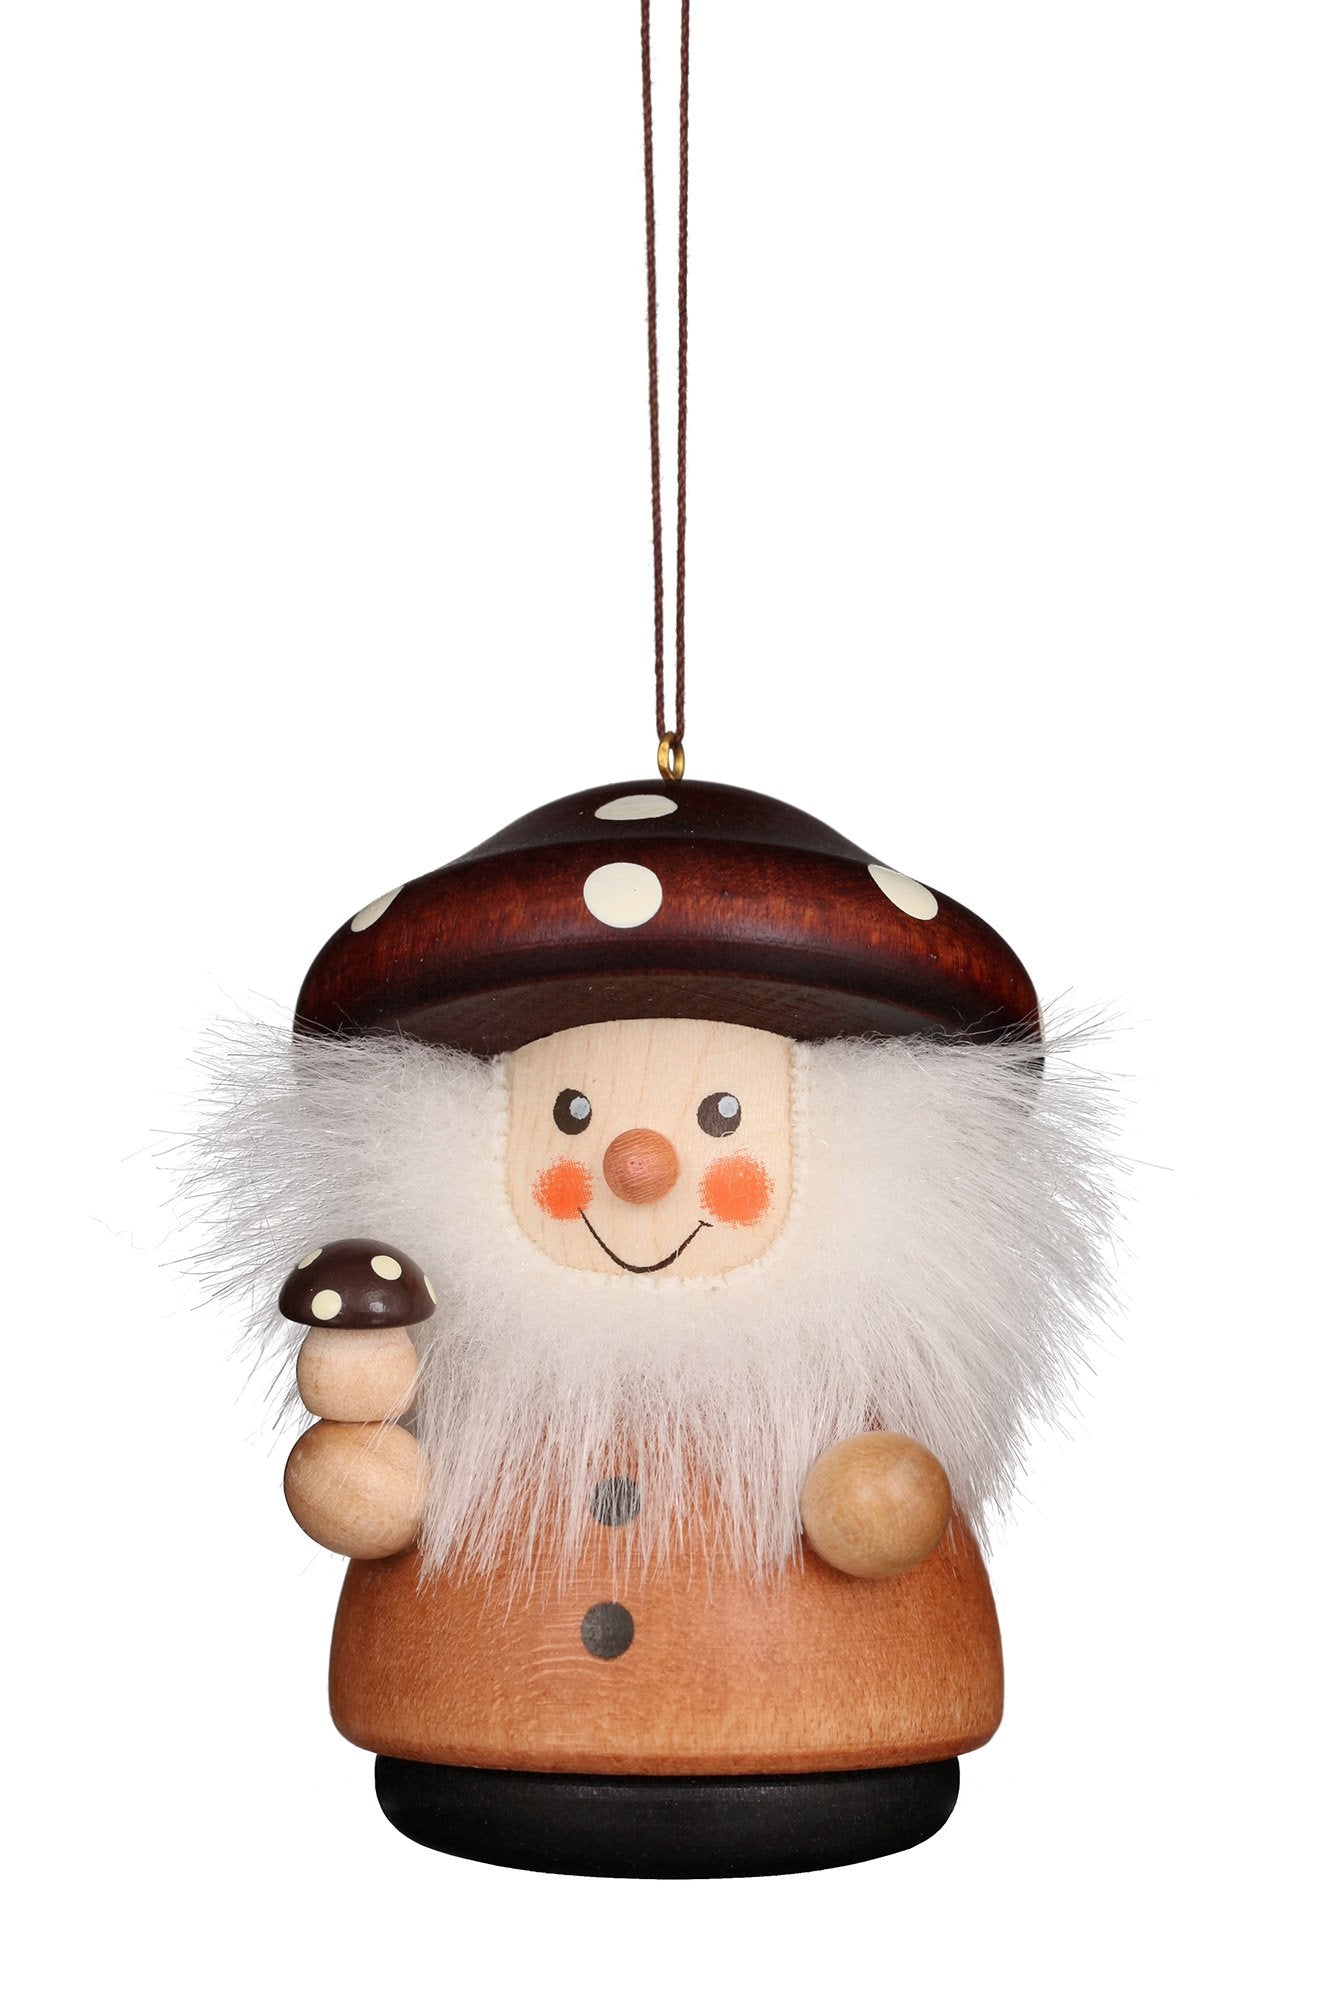 Little Gnome Christmas Tree Decoration - Natural Mushroom Man